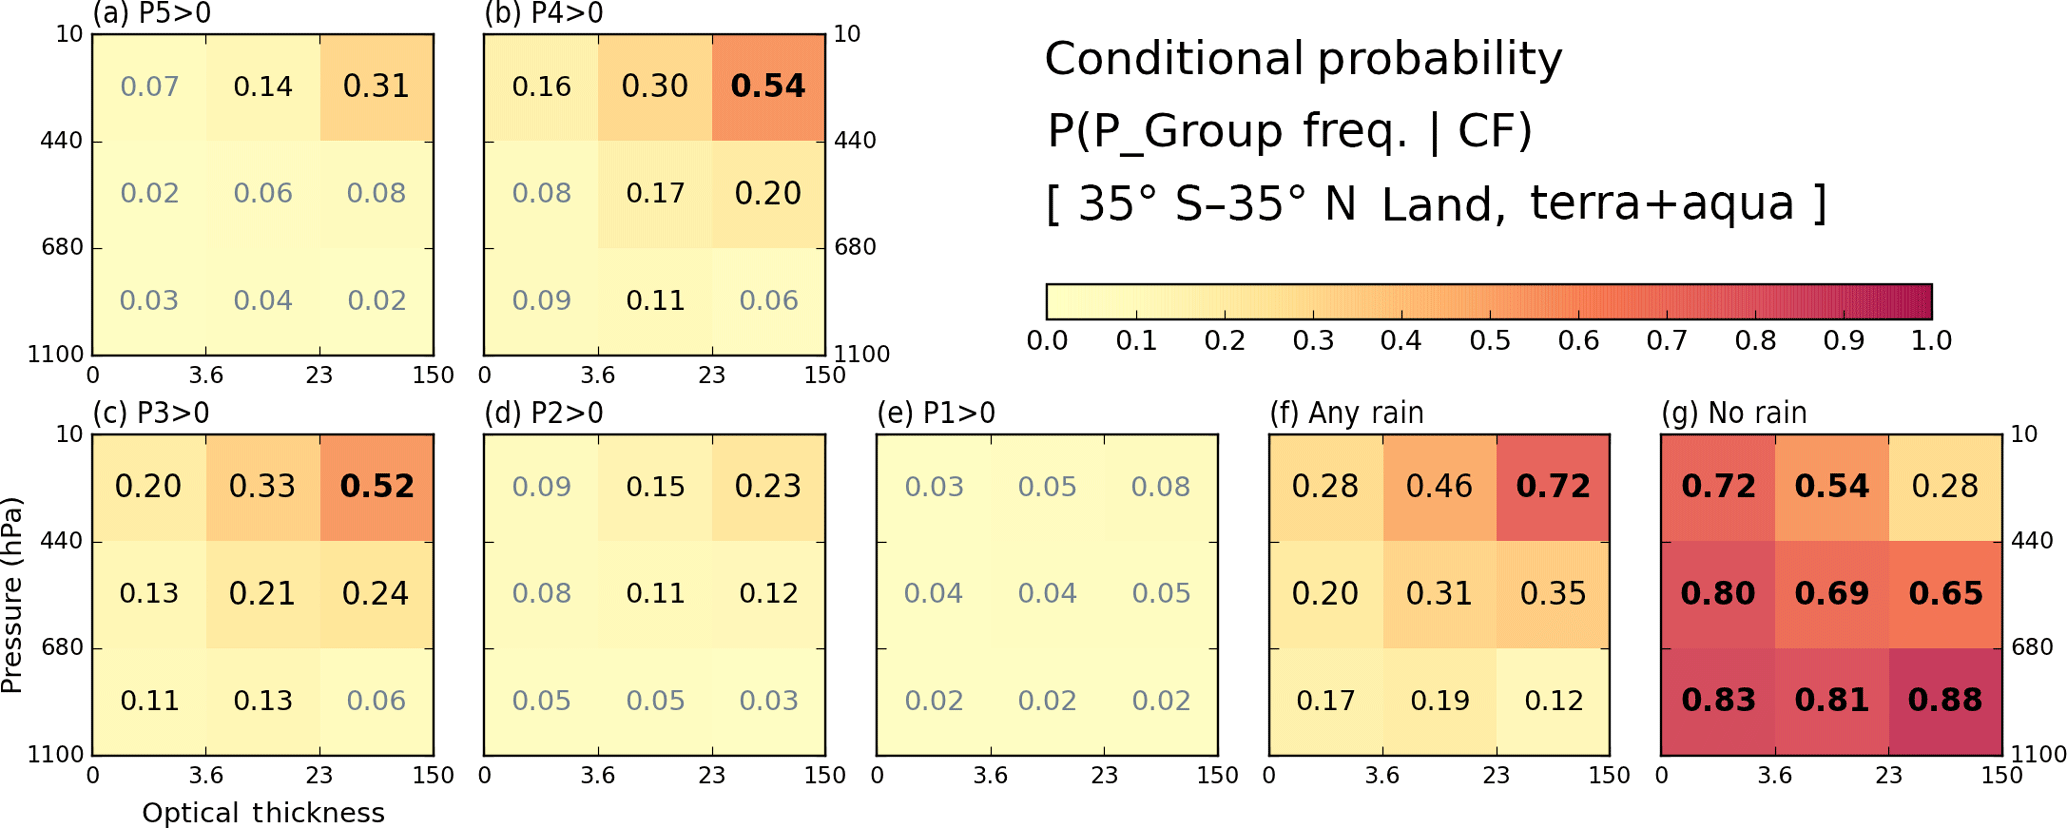 ACP - Contrasting the co-variability of daytime cloud and